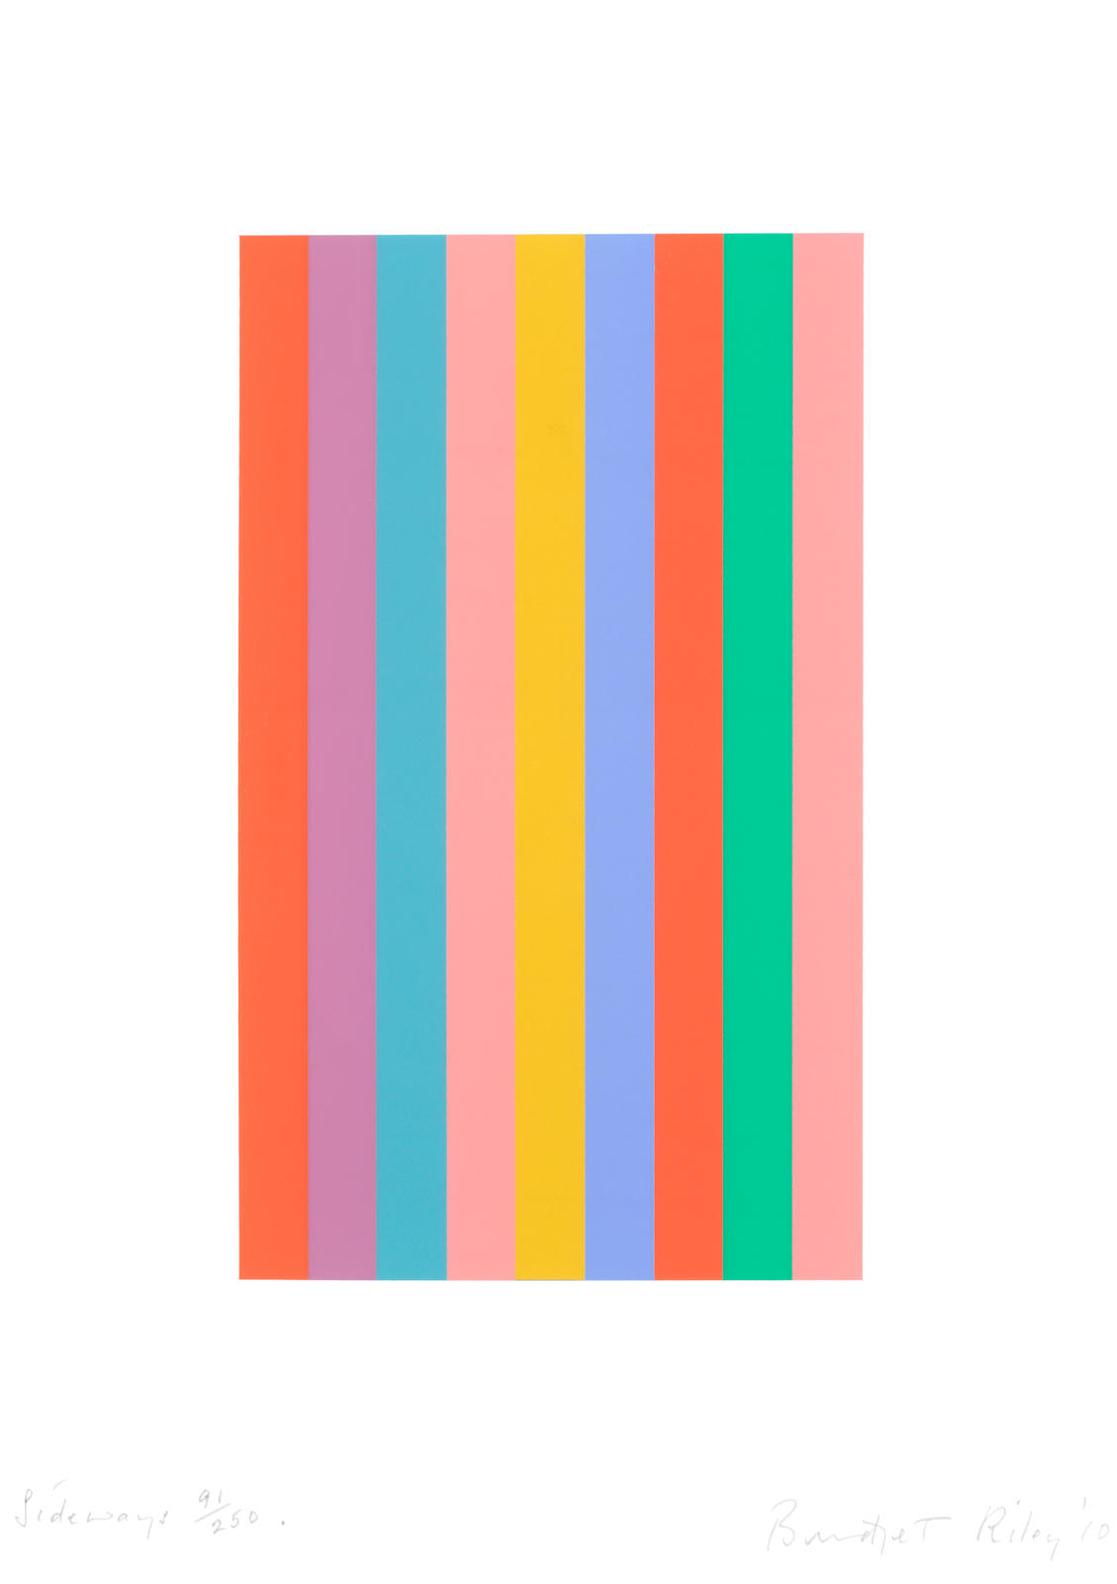 Bridget Riley-Sideways (Schubert 76)-2010